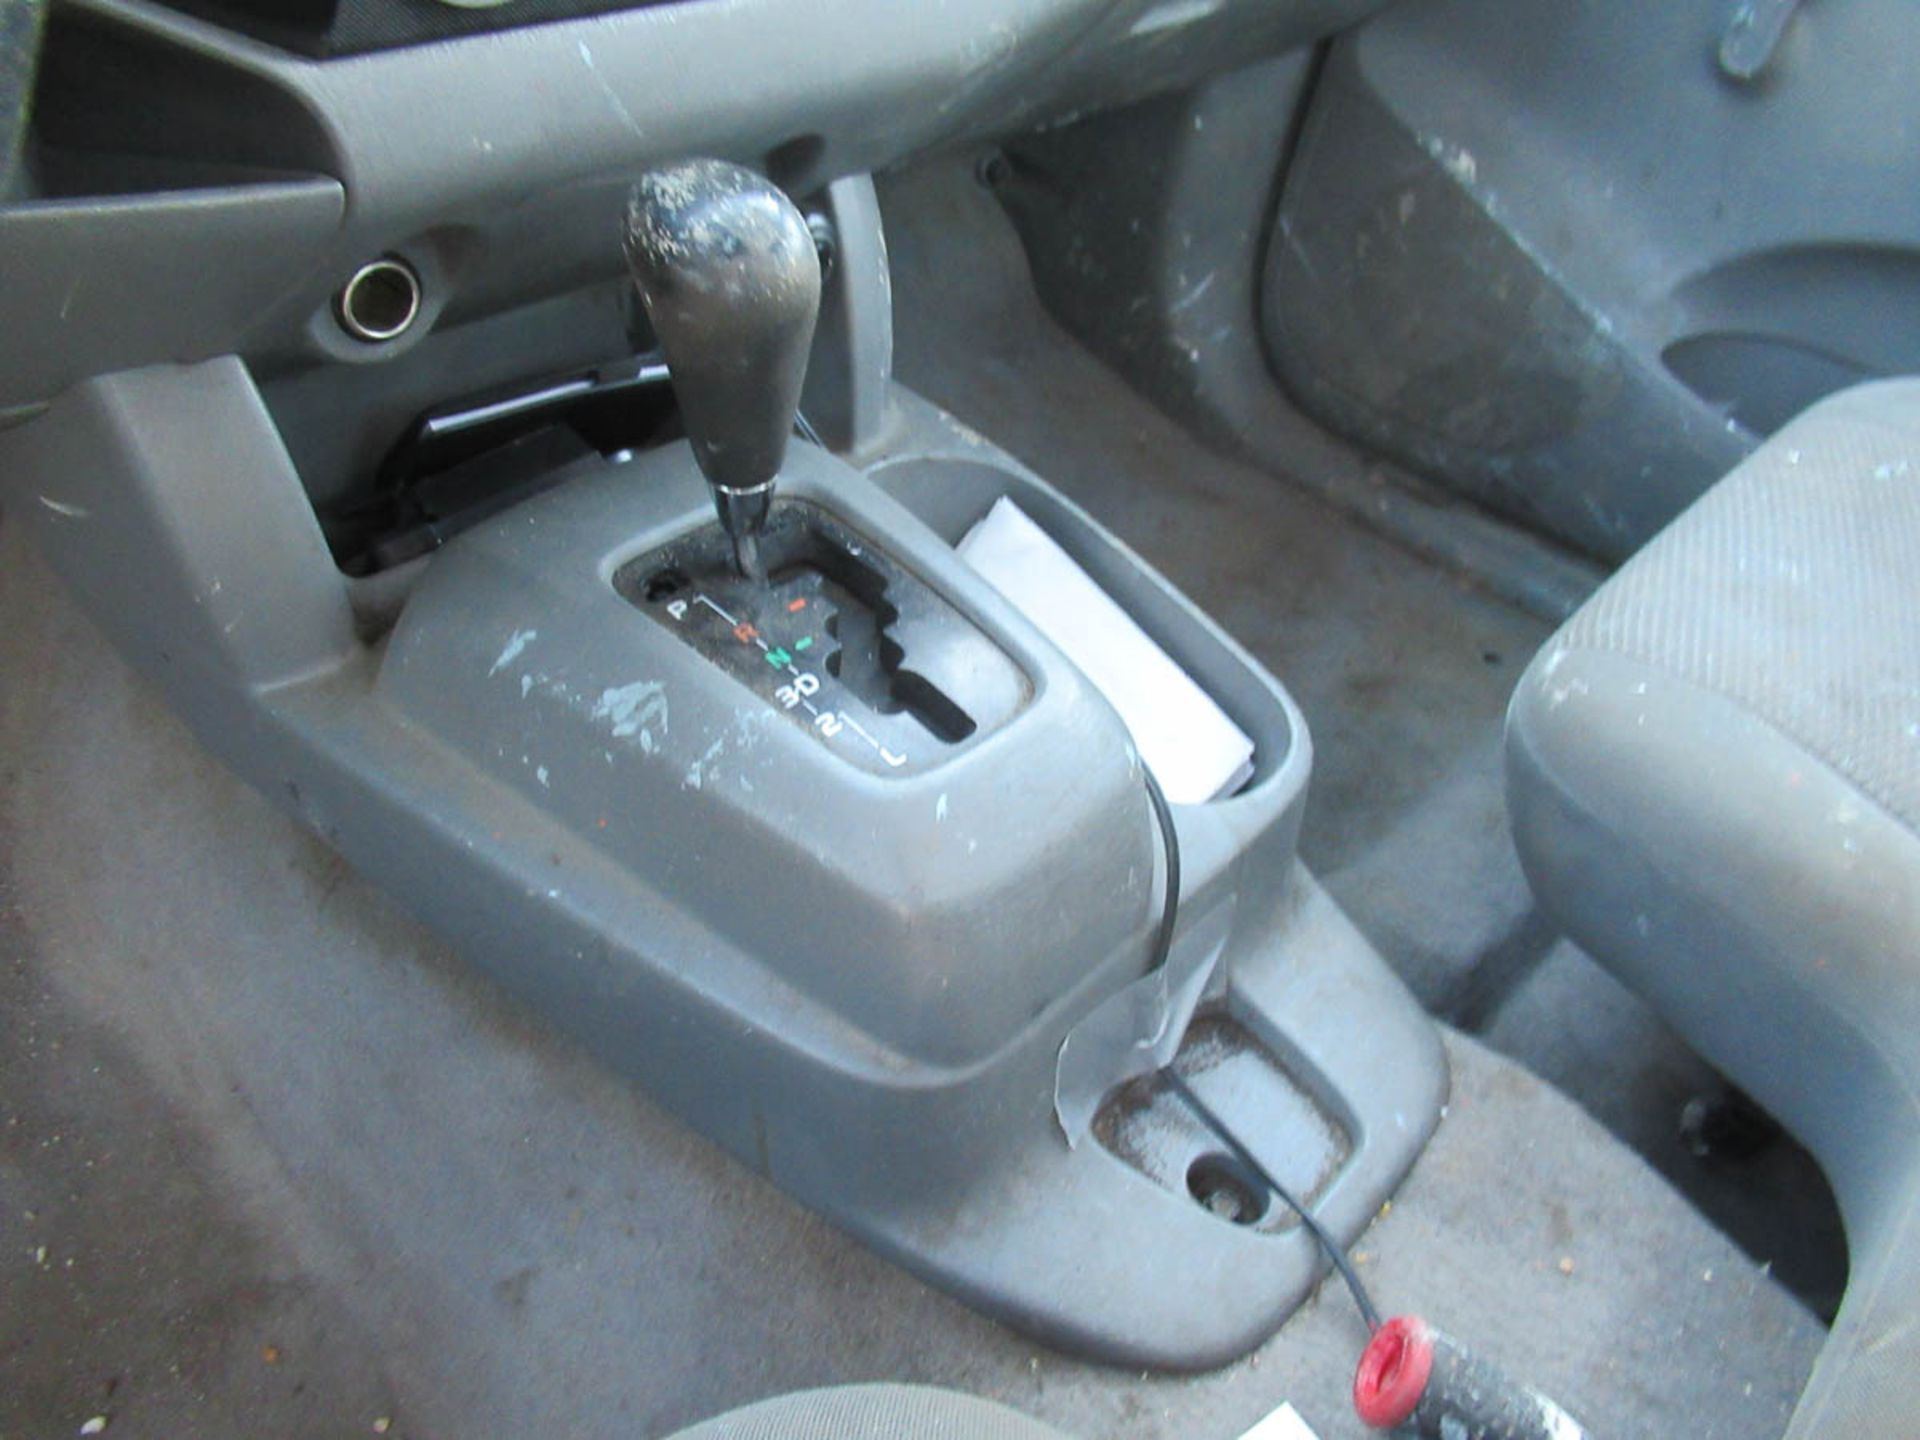 2008 TOYOTA TACOMA PICKUP TRUCK, AUTOMATIC, WITH APPROXIMATELY 105,732 MILES, VIN: 5TENX22N382504186 - Image 5 of 12